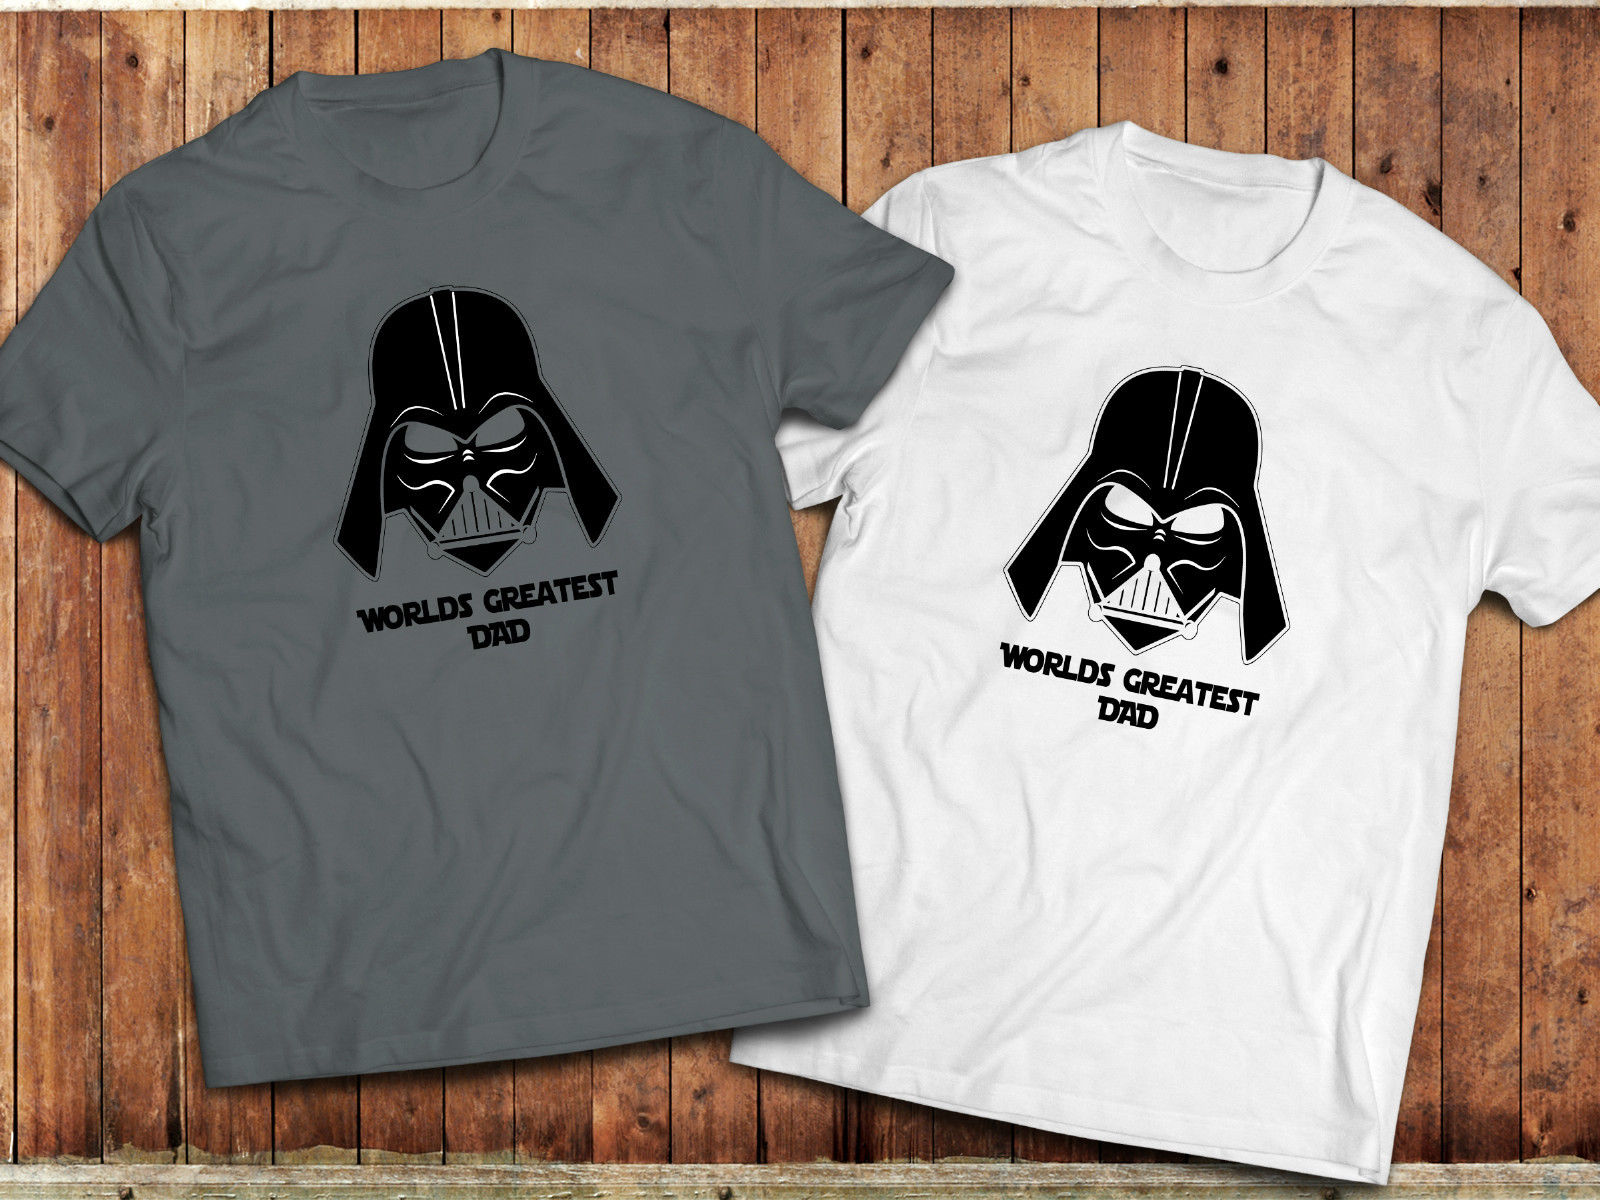 100% Cotton for Man Shirts Star Wars T-shirt, Funny Darth Vader, Worlds Greatest Dad Humurous Meme Tee Print Tee Shirts image